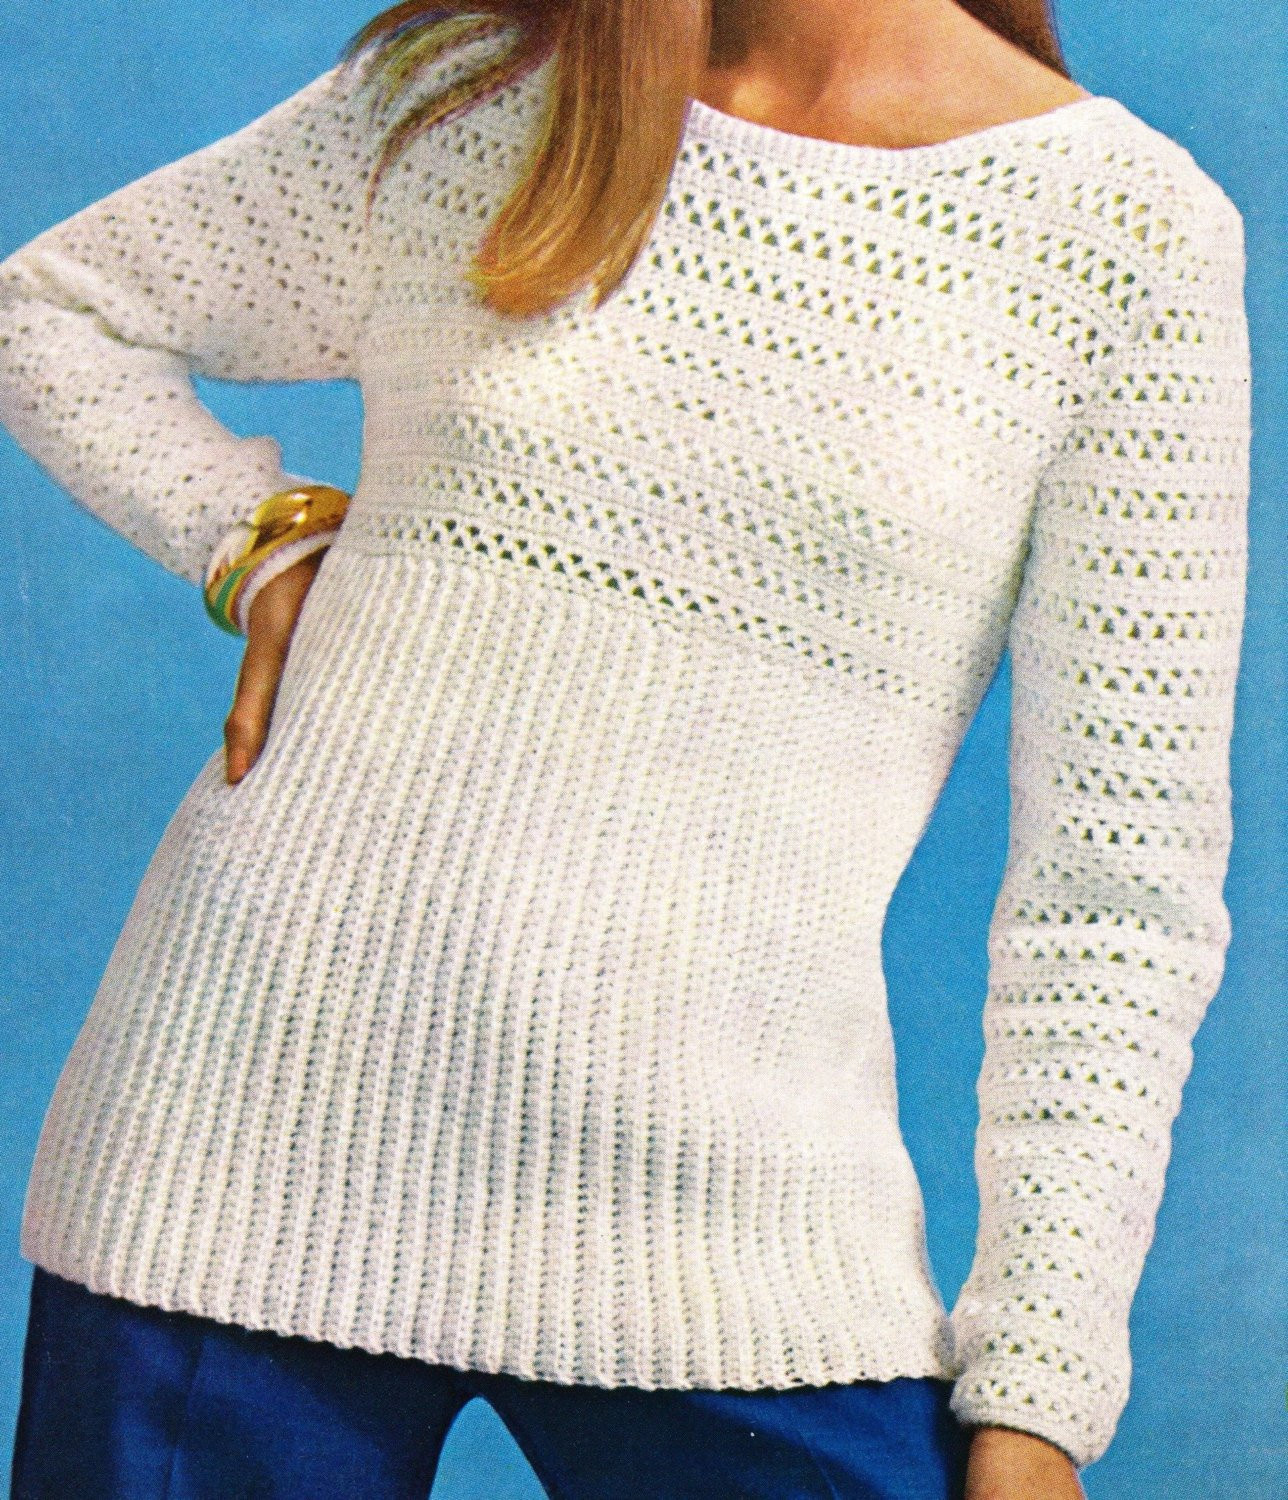 Crochet Pullover Sweater Awesome Crochet Sweater Pullover Pattern Womens Crochet Sweater Of Delightful 48 Pics Crochet Pullover Sweater